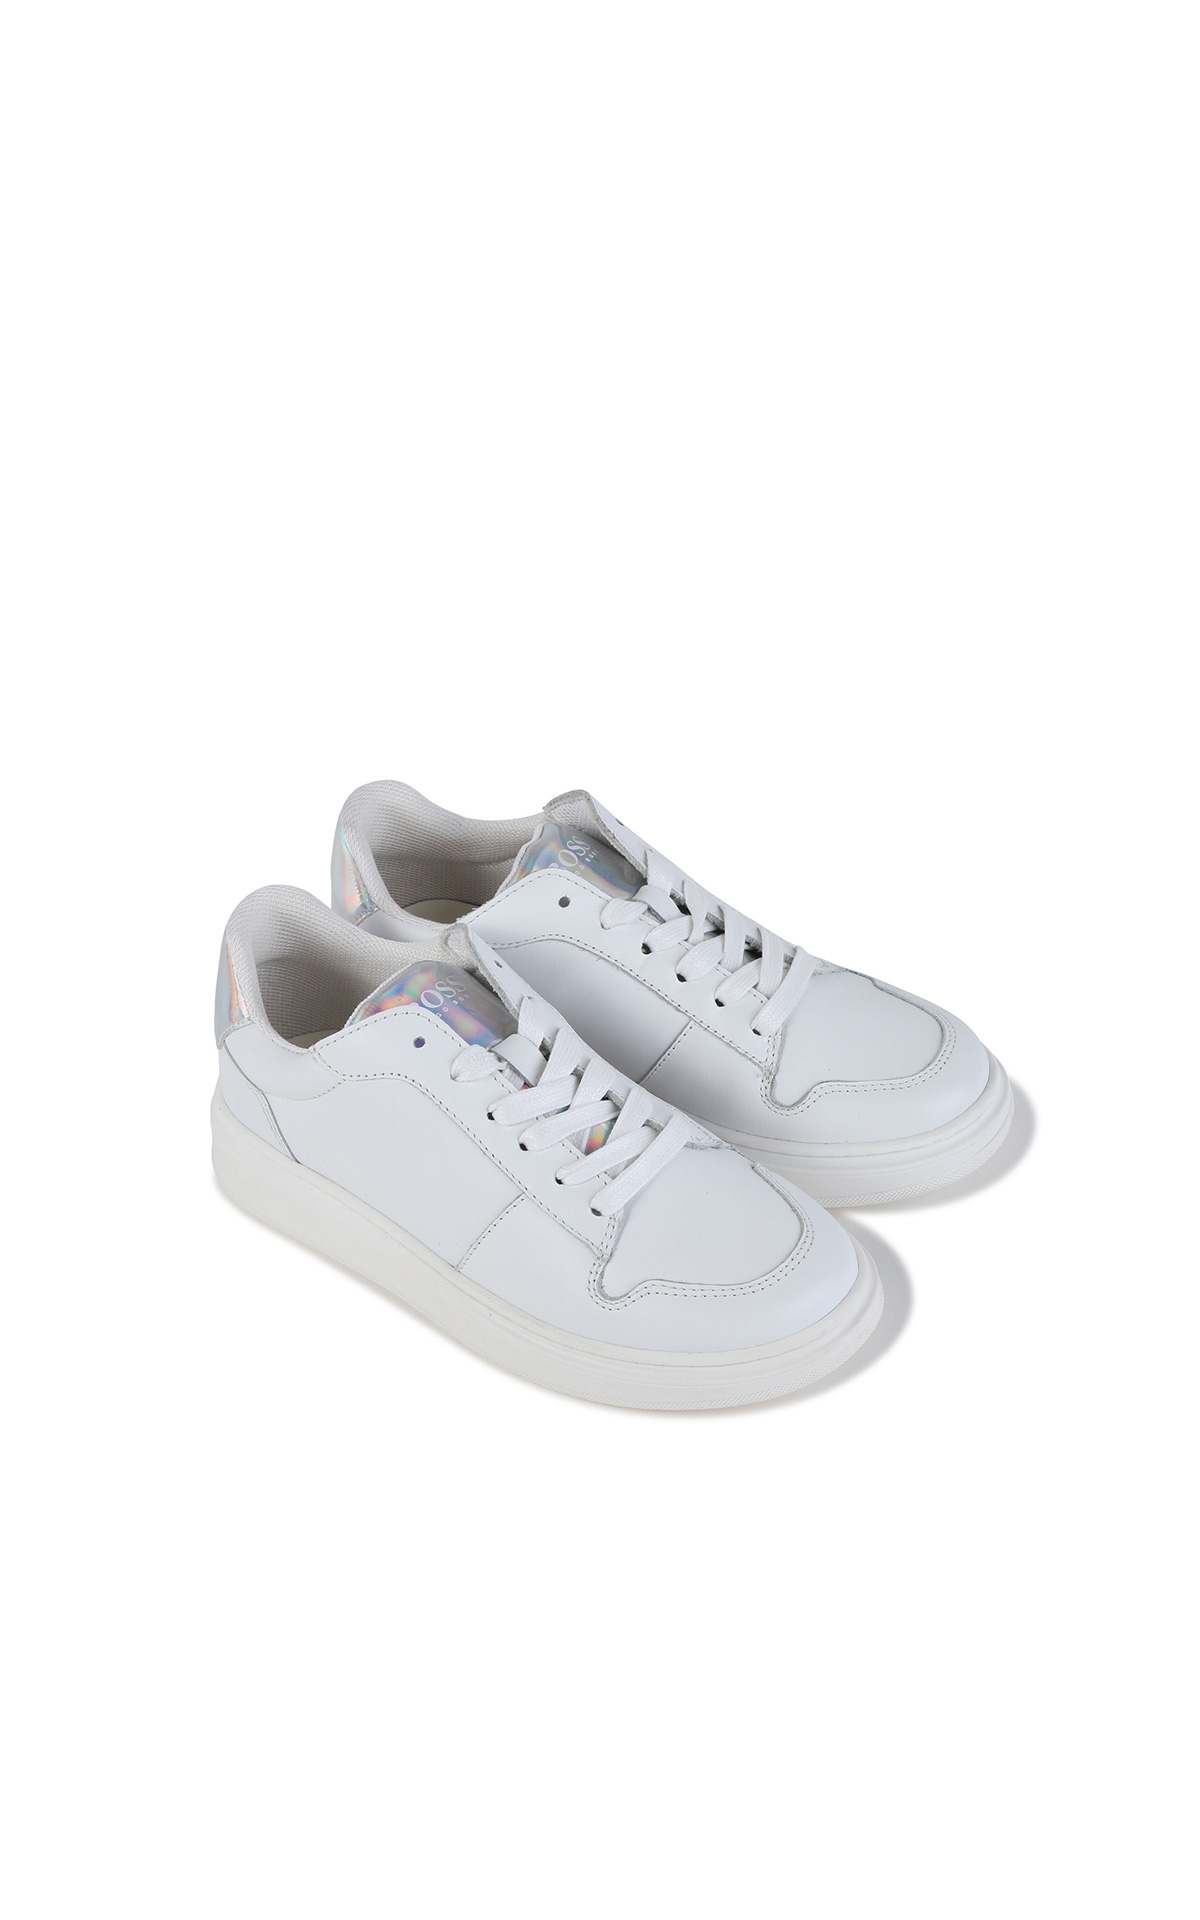 La Vallée Village BOSS Kidswear girl sneakers